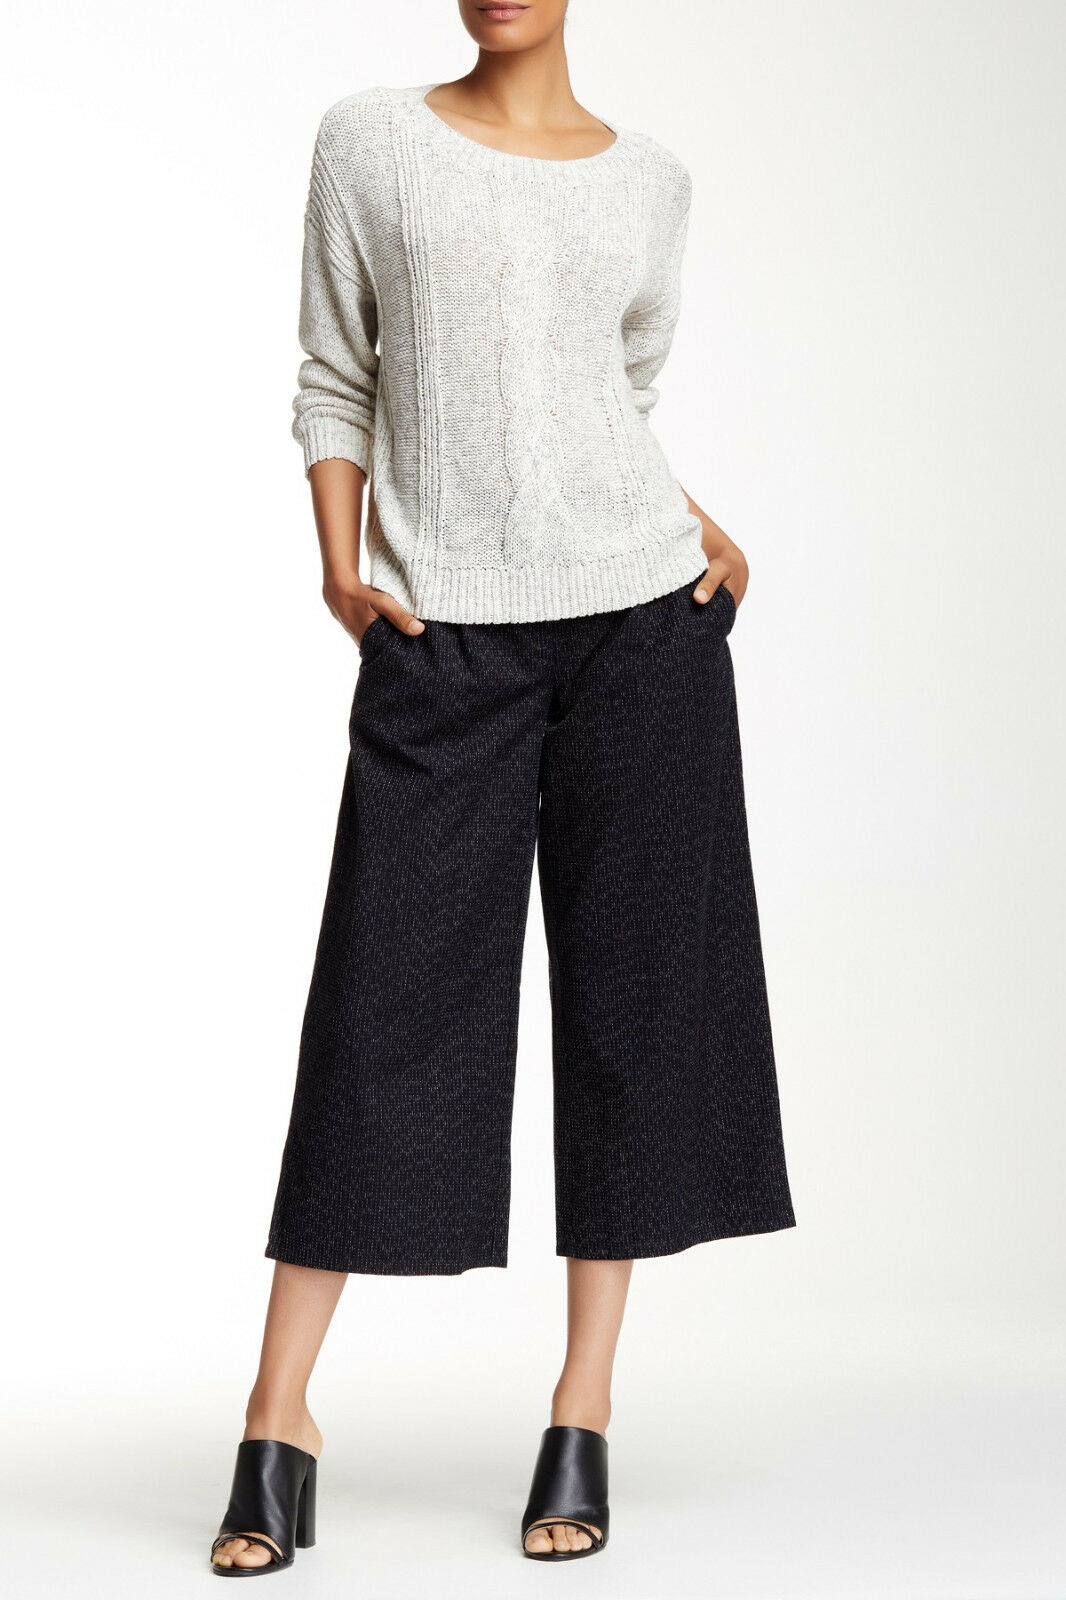 198 NWT Eileen Fisher 100% Organic Cotton Wide Leg Cropped Pant Größe S